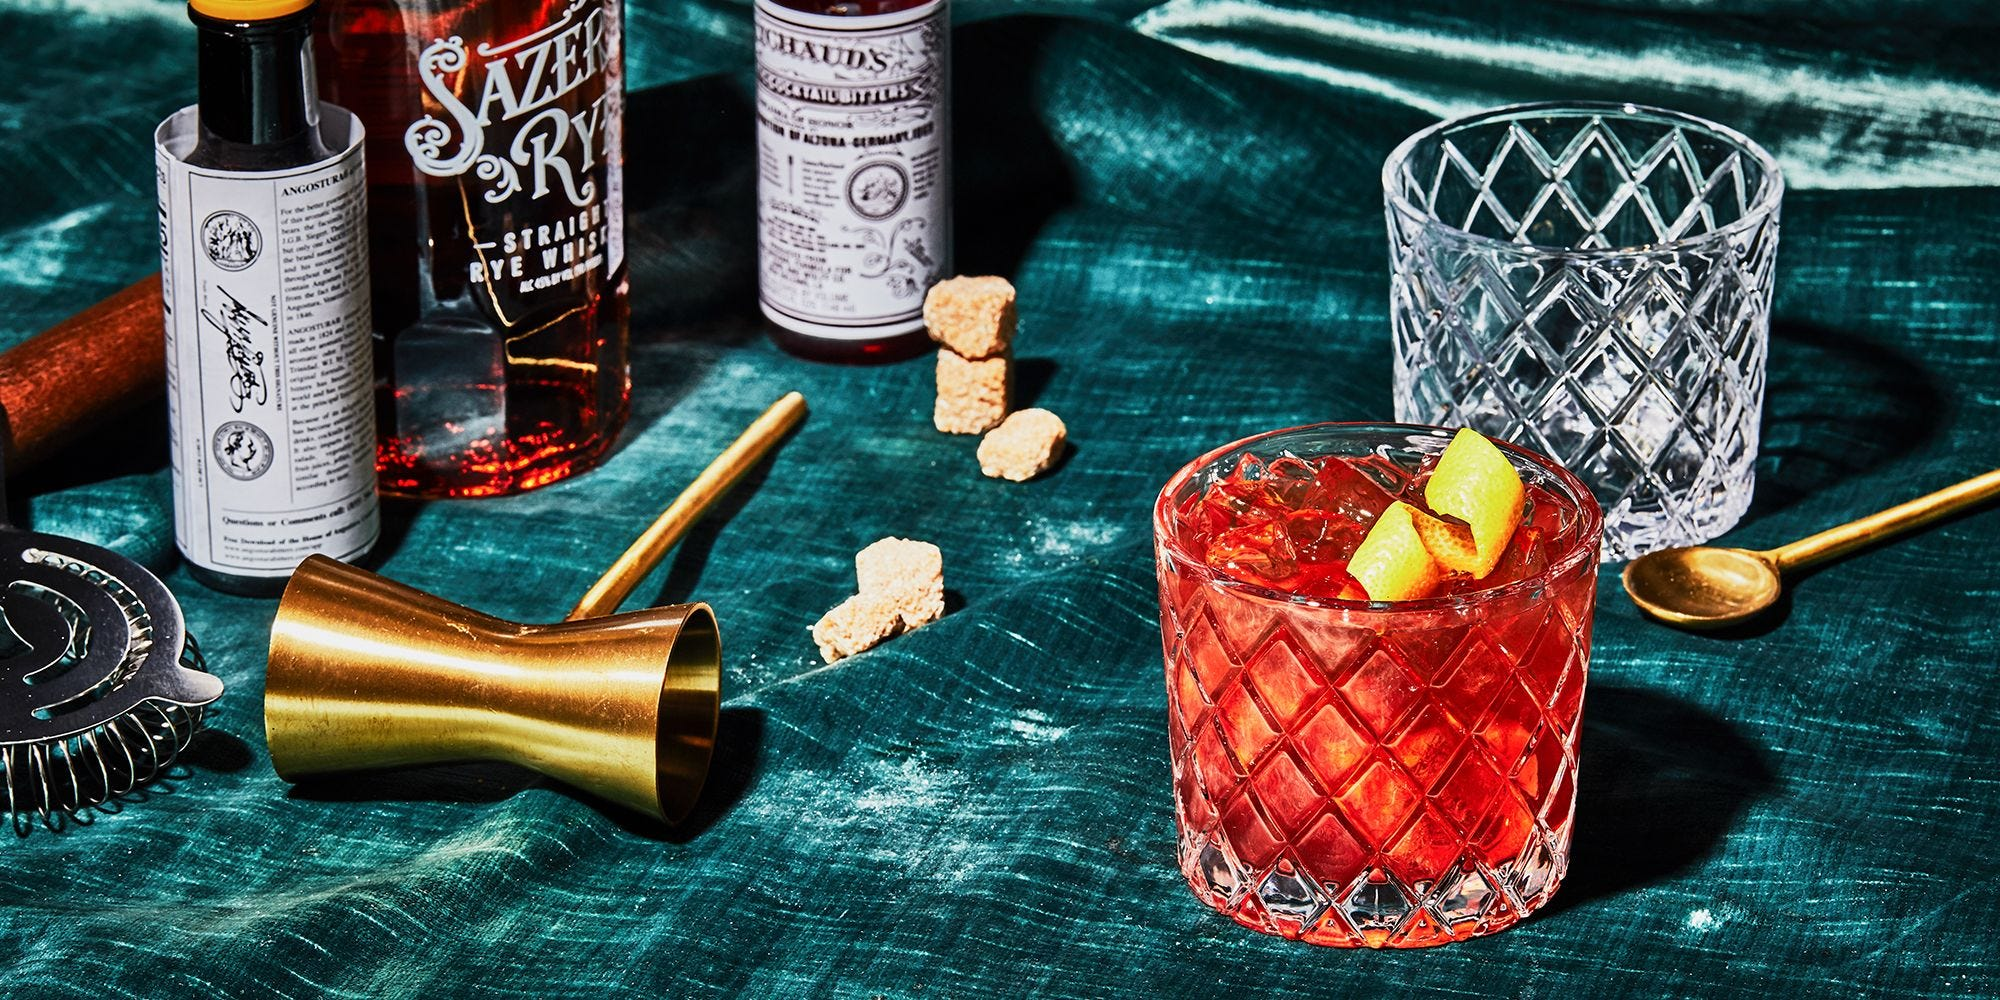 A table top set up with the fixings of a Sazerac cocktail.